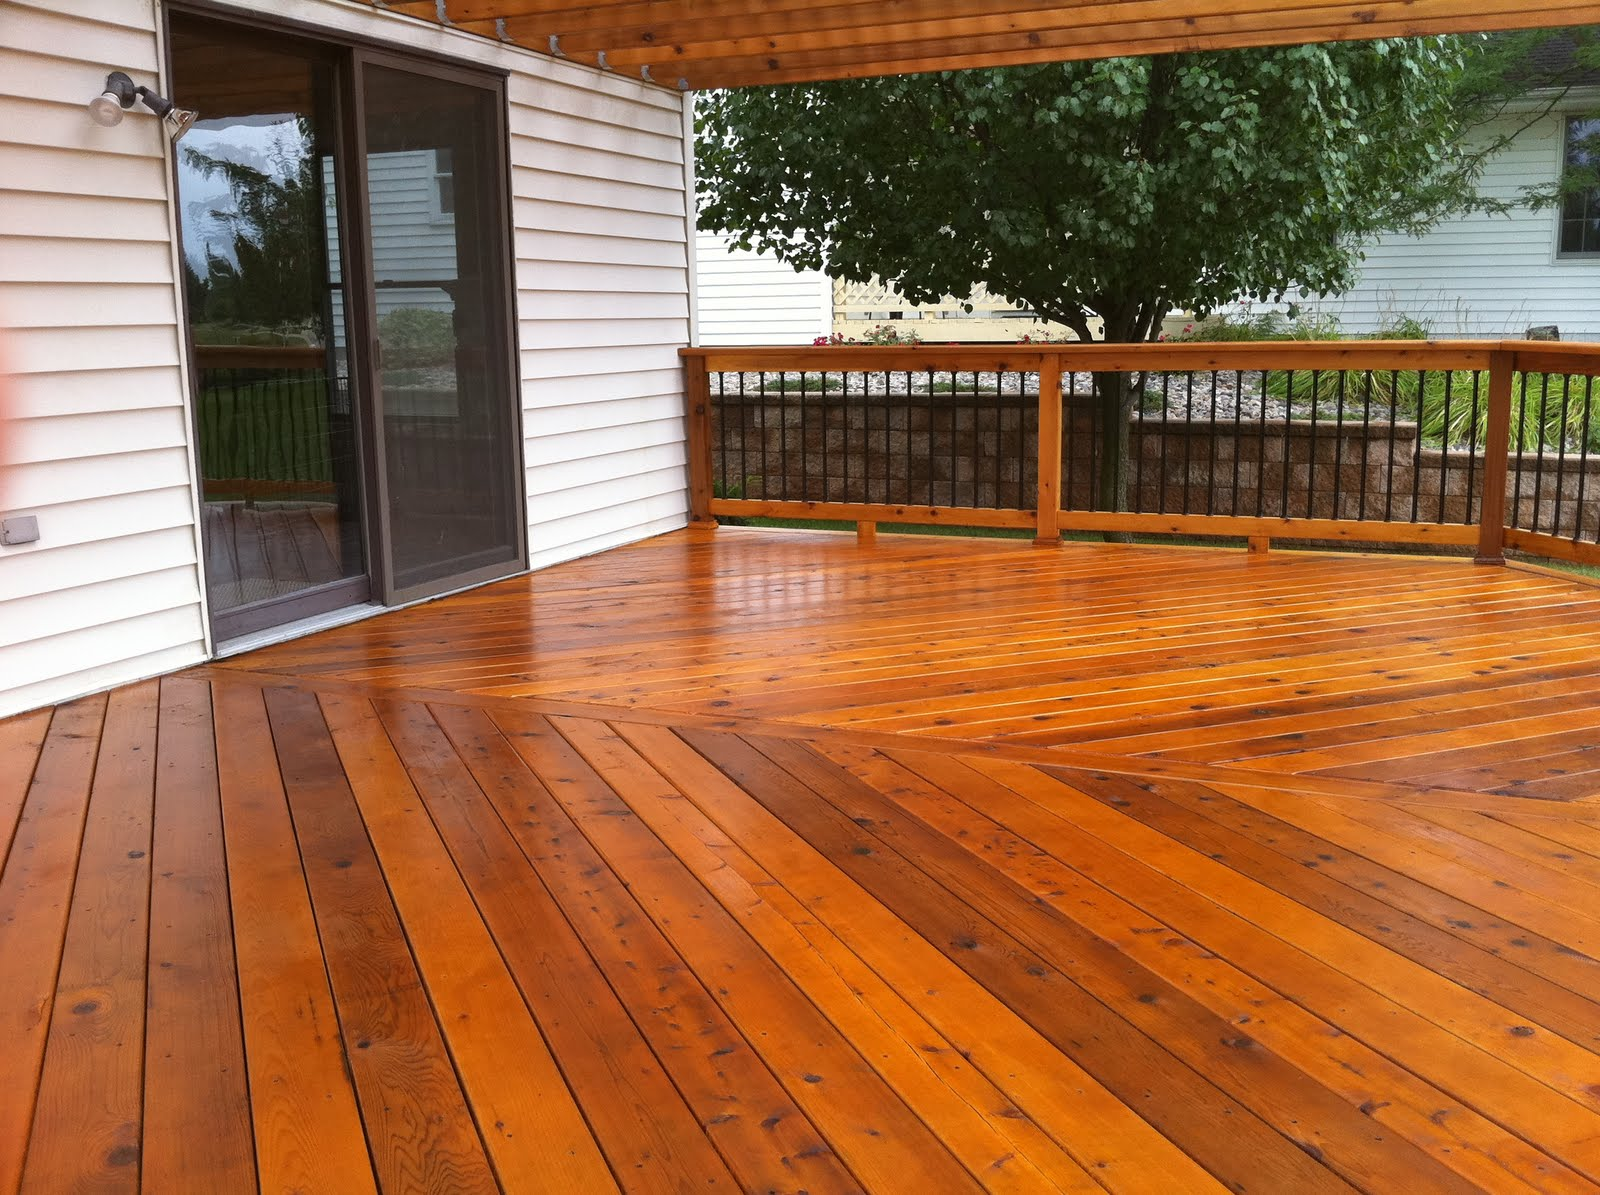 Deck upgrade project